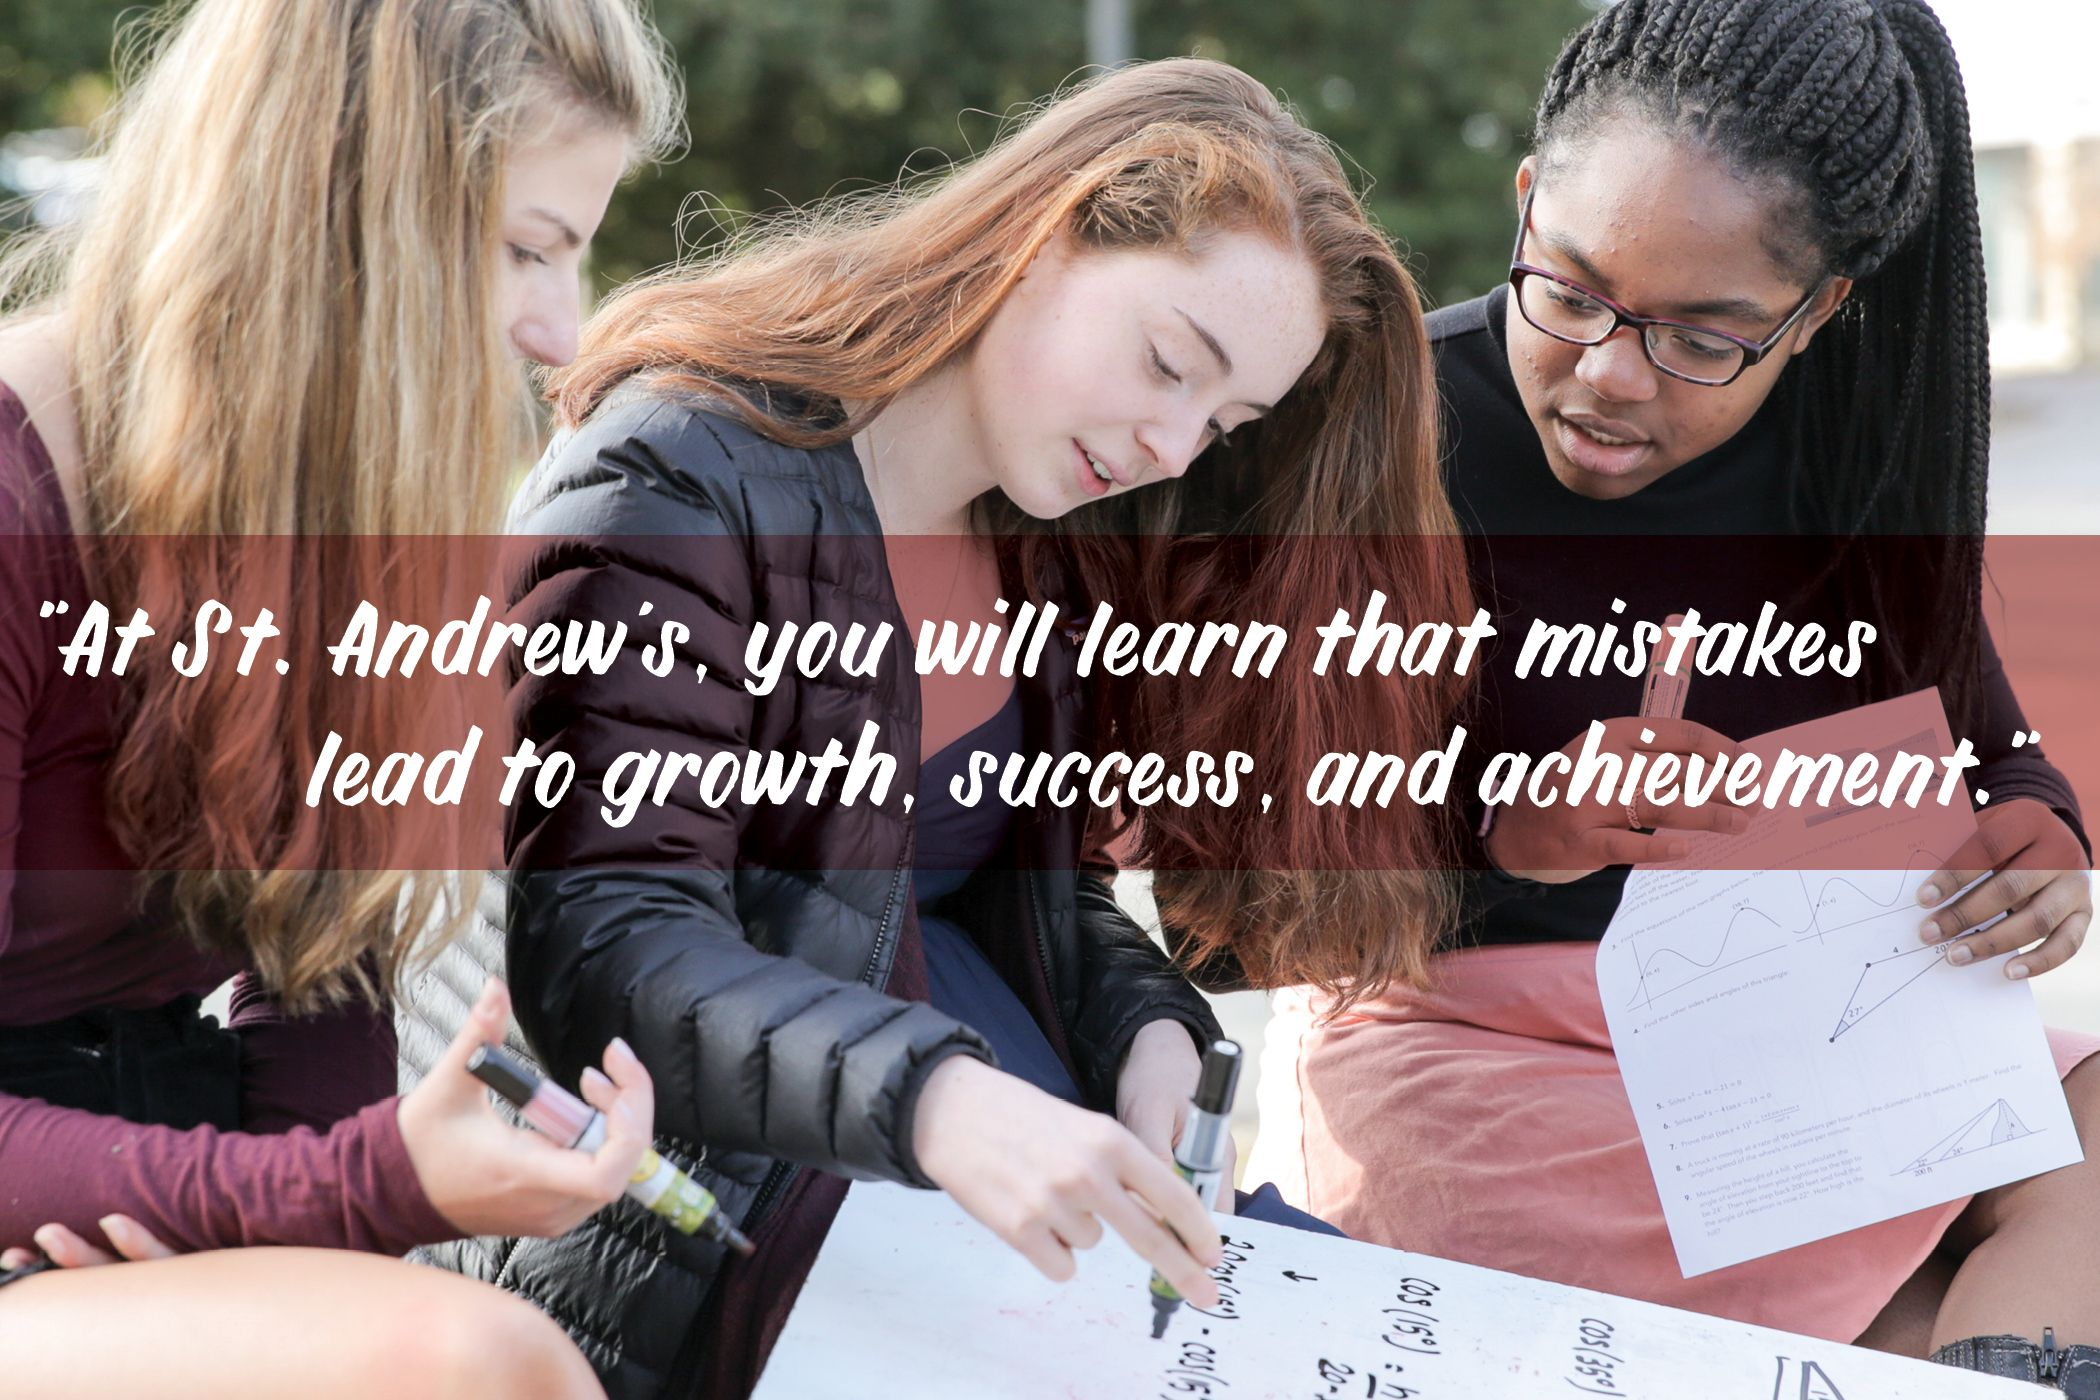 At Saint Andrew's you will learn that mistakes lead to growth, success, and achievement.